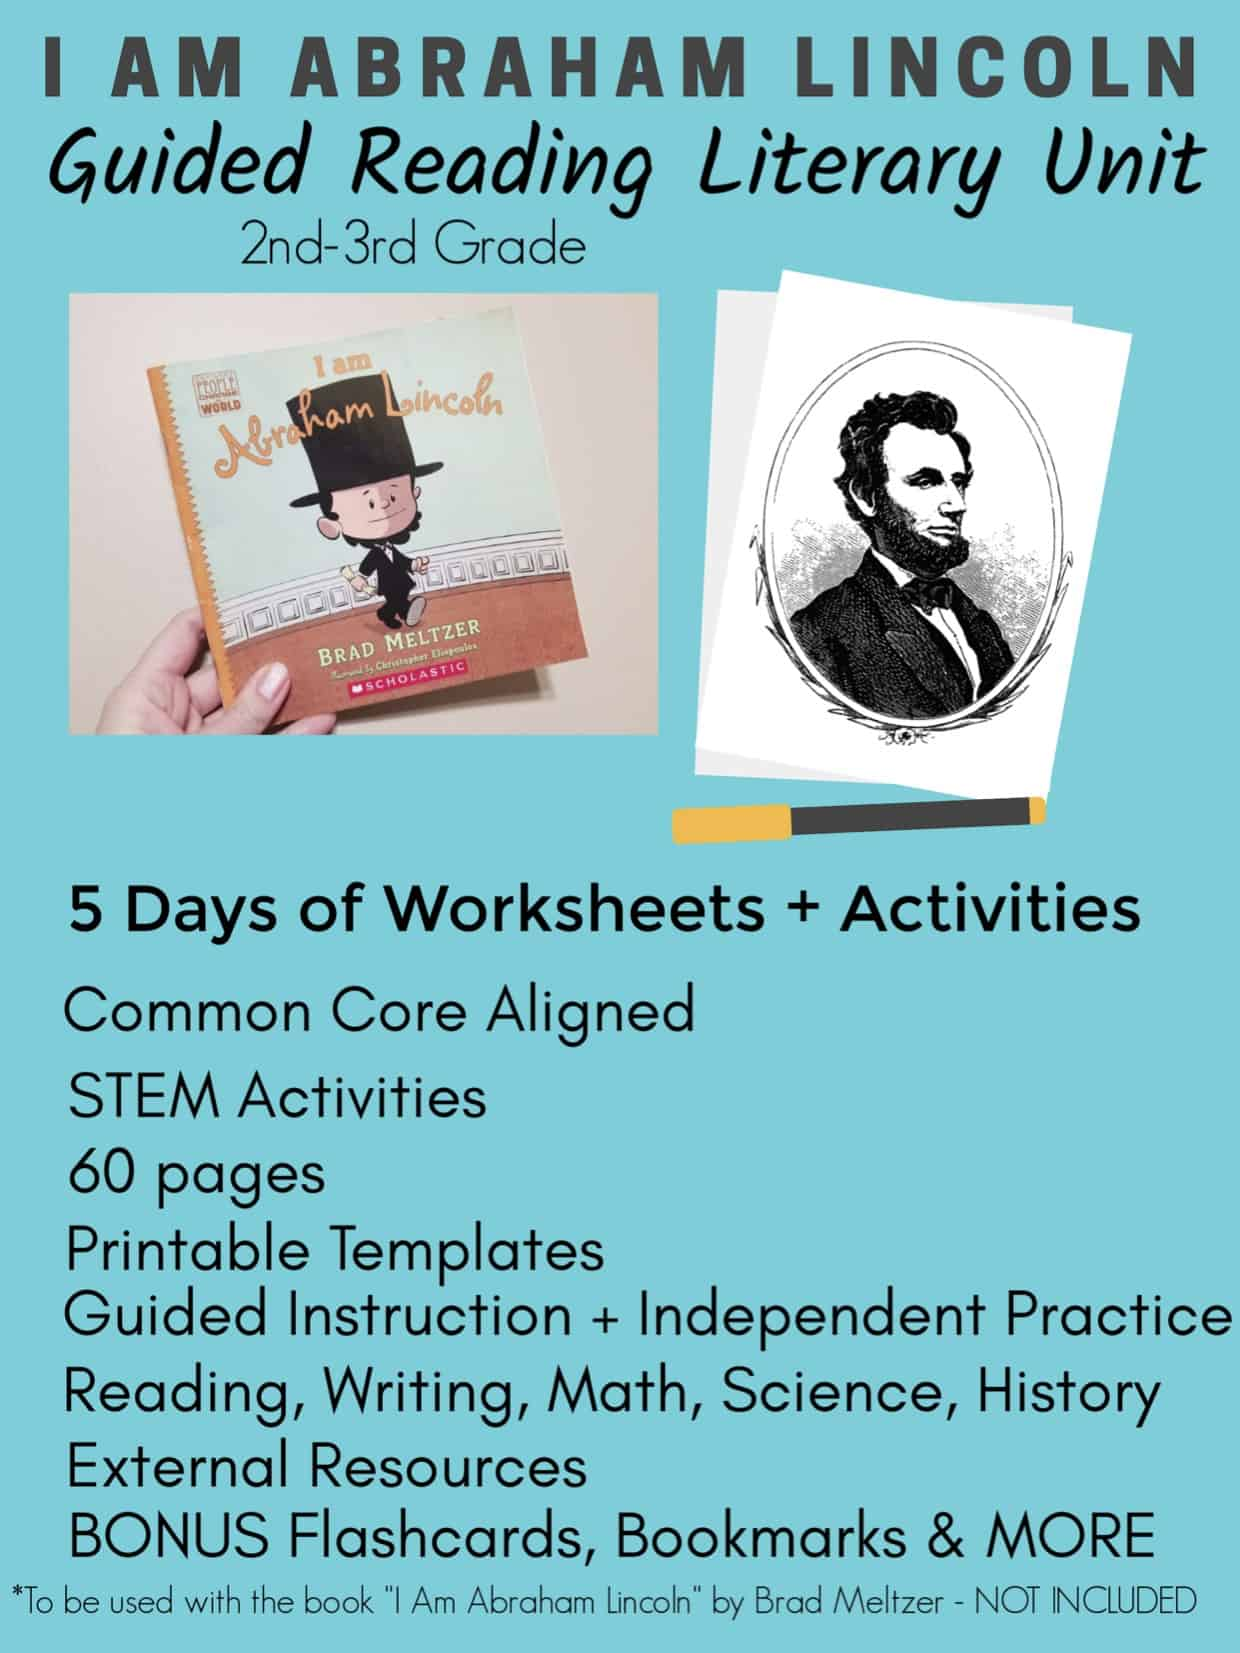 5 Day I Am Abraham Lincoln Guided Reading Literary Unit